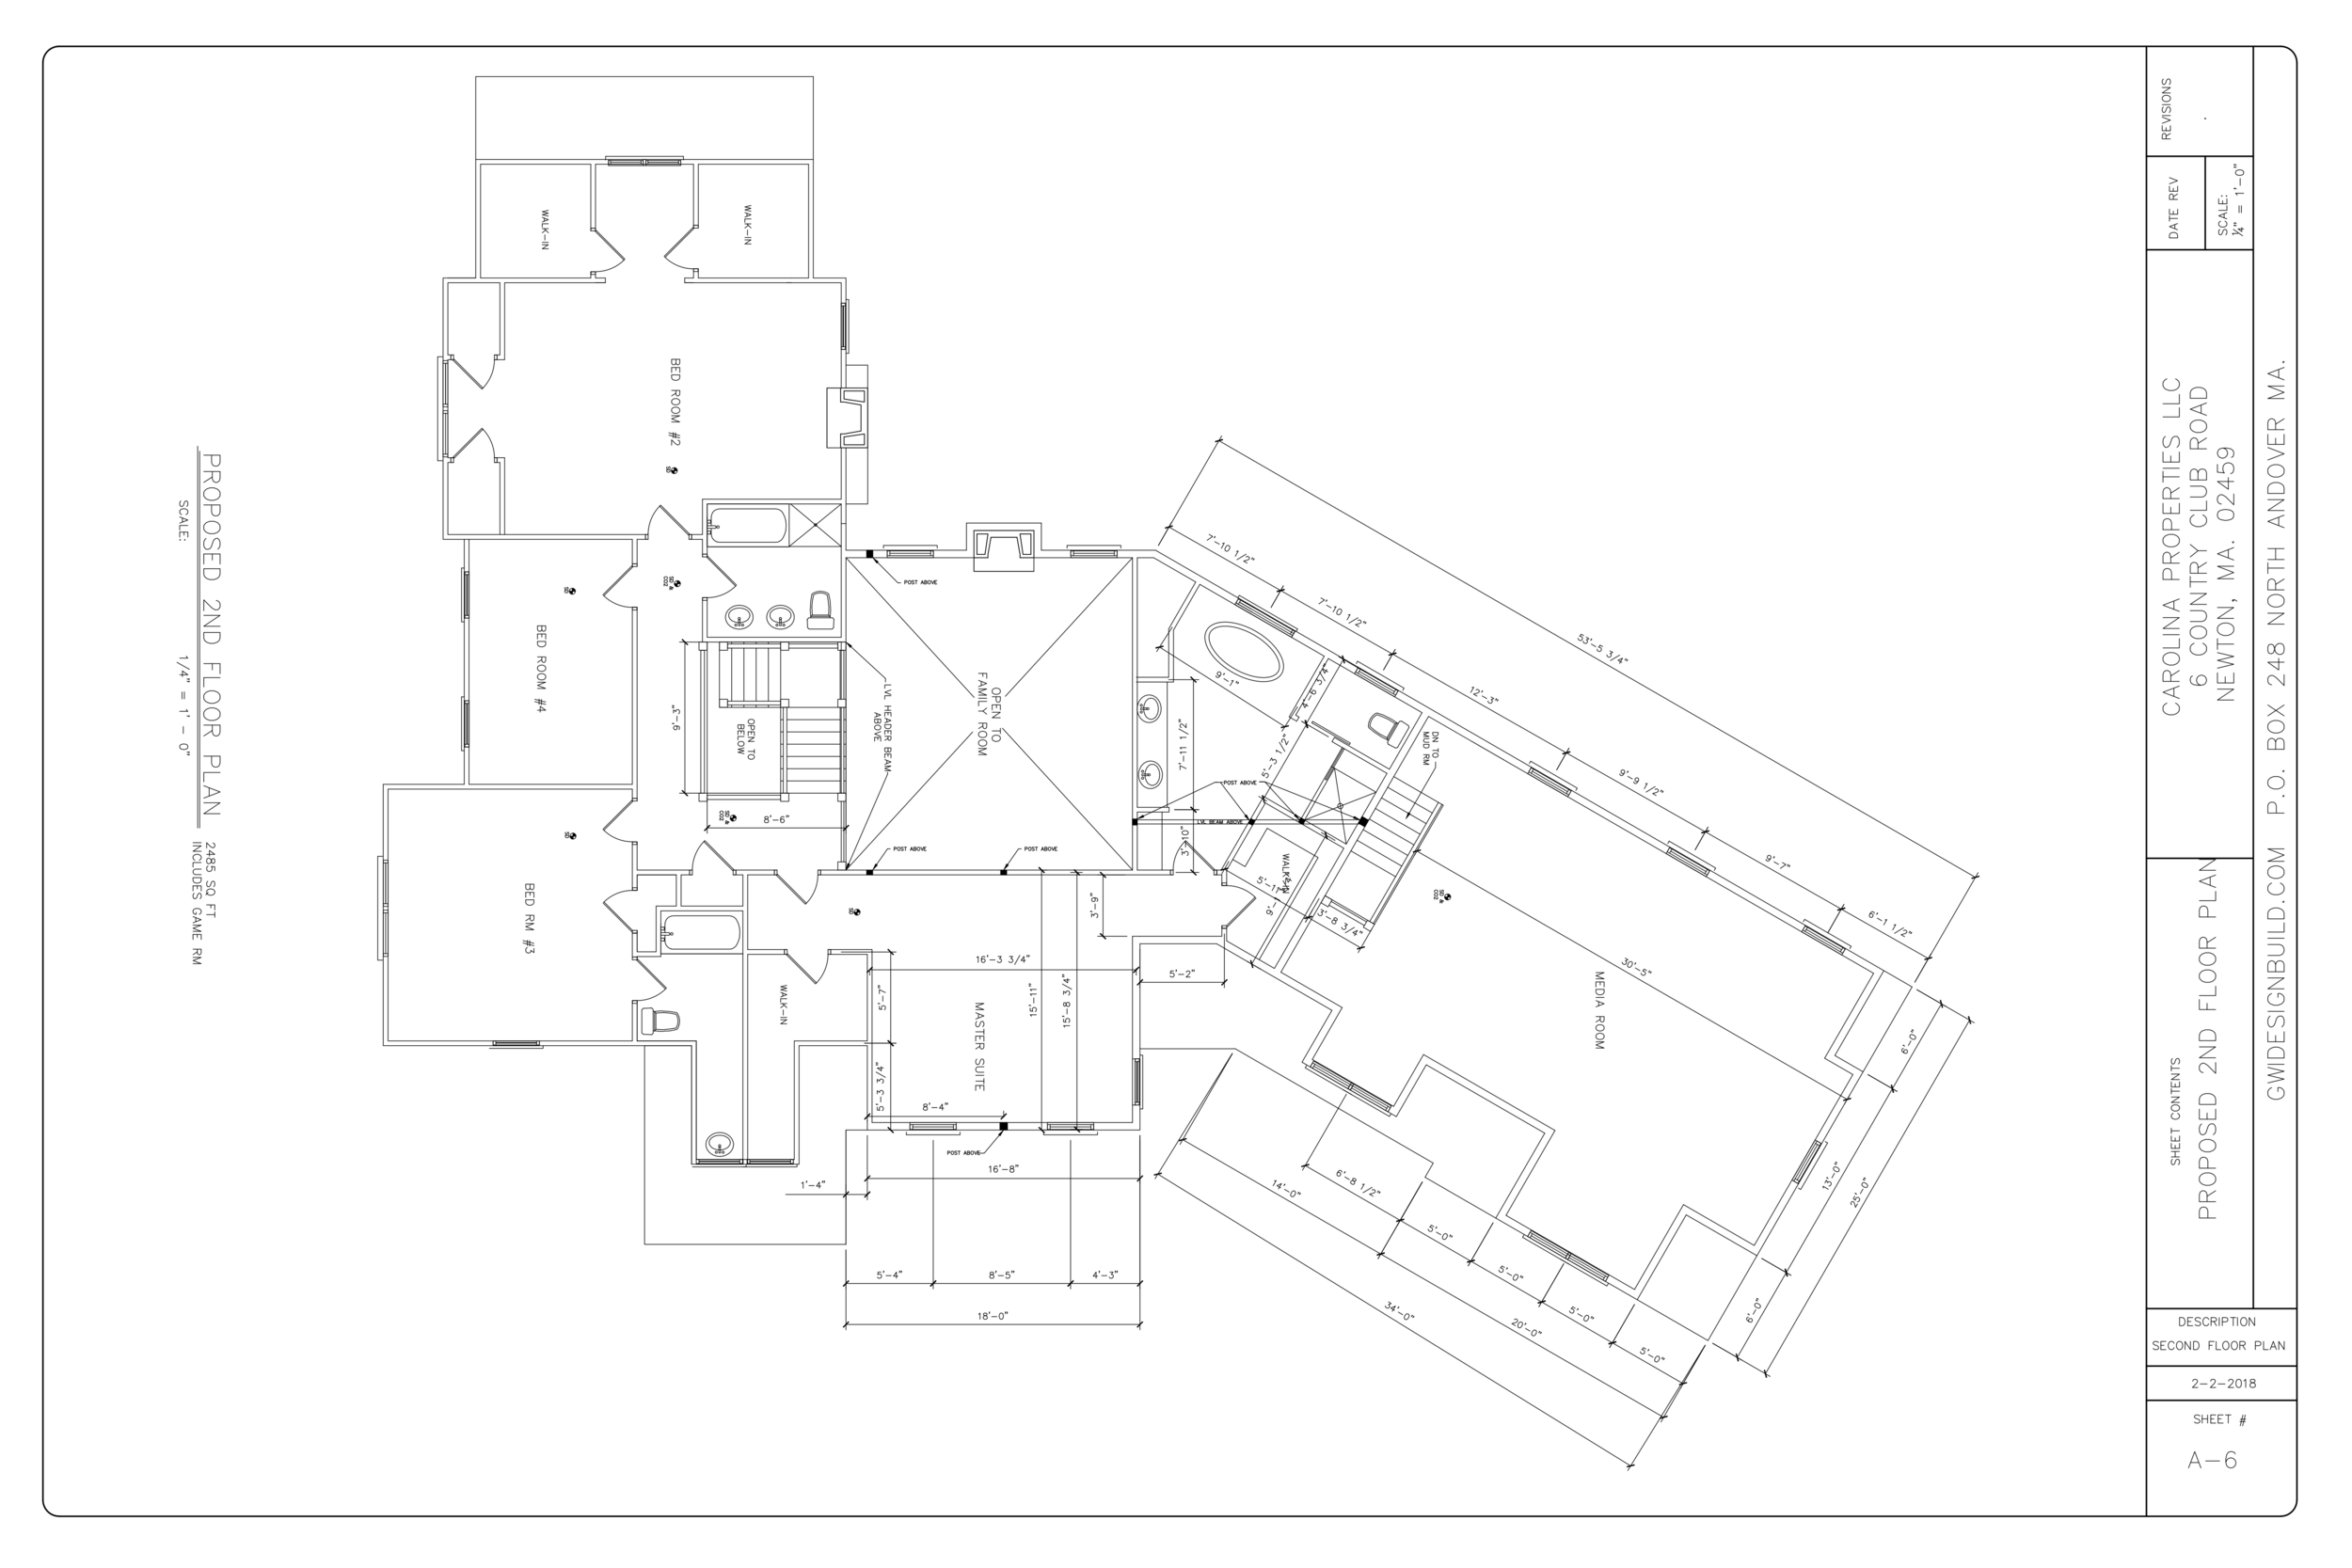 6-PROPOSED 2ND FLOOR.png